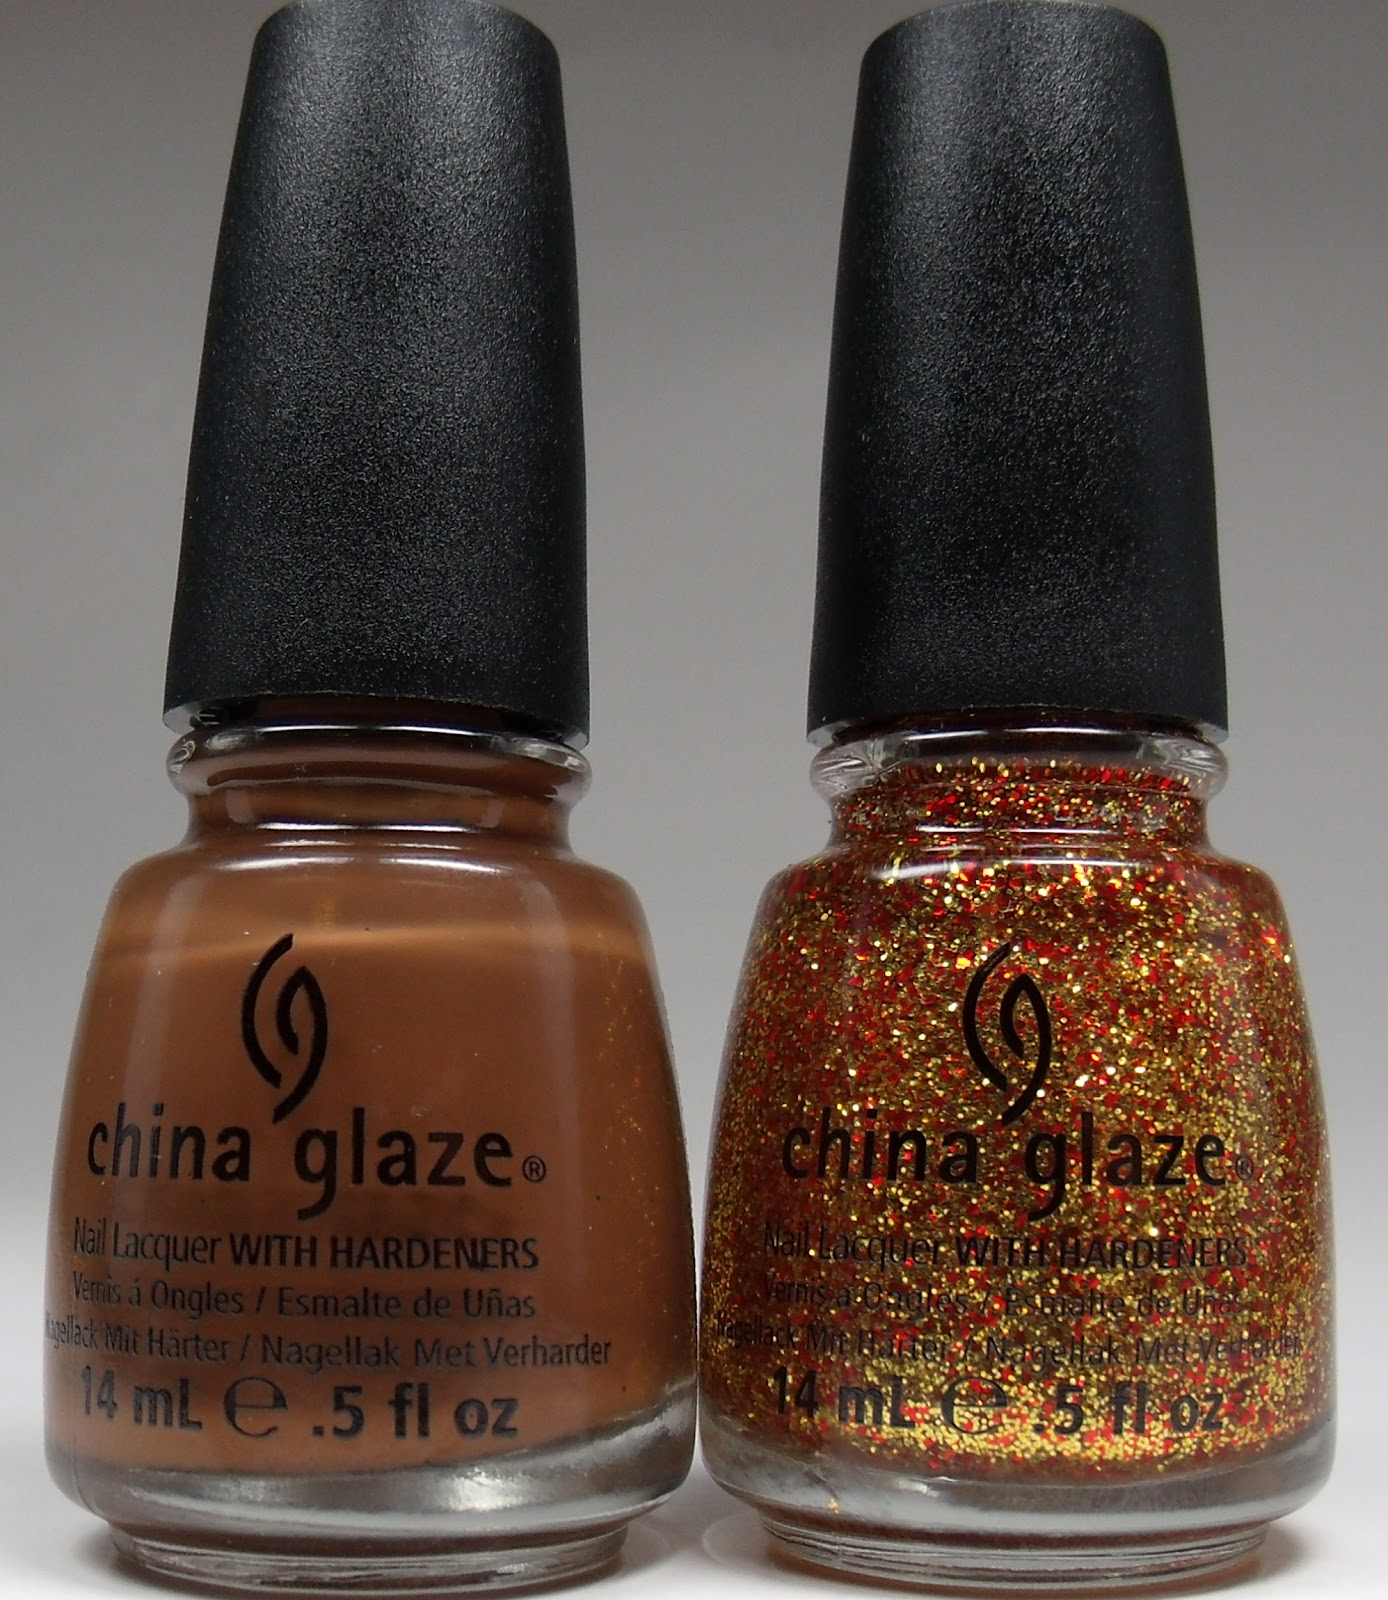 mahogany magic polish China glaze mahogany magic nail polish, 1128, 50 fl oz warm brown creme nail color with slight olive tones china glaze hunger games collection.